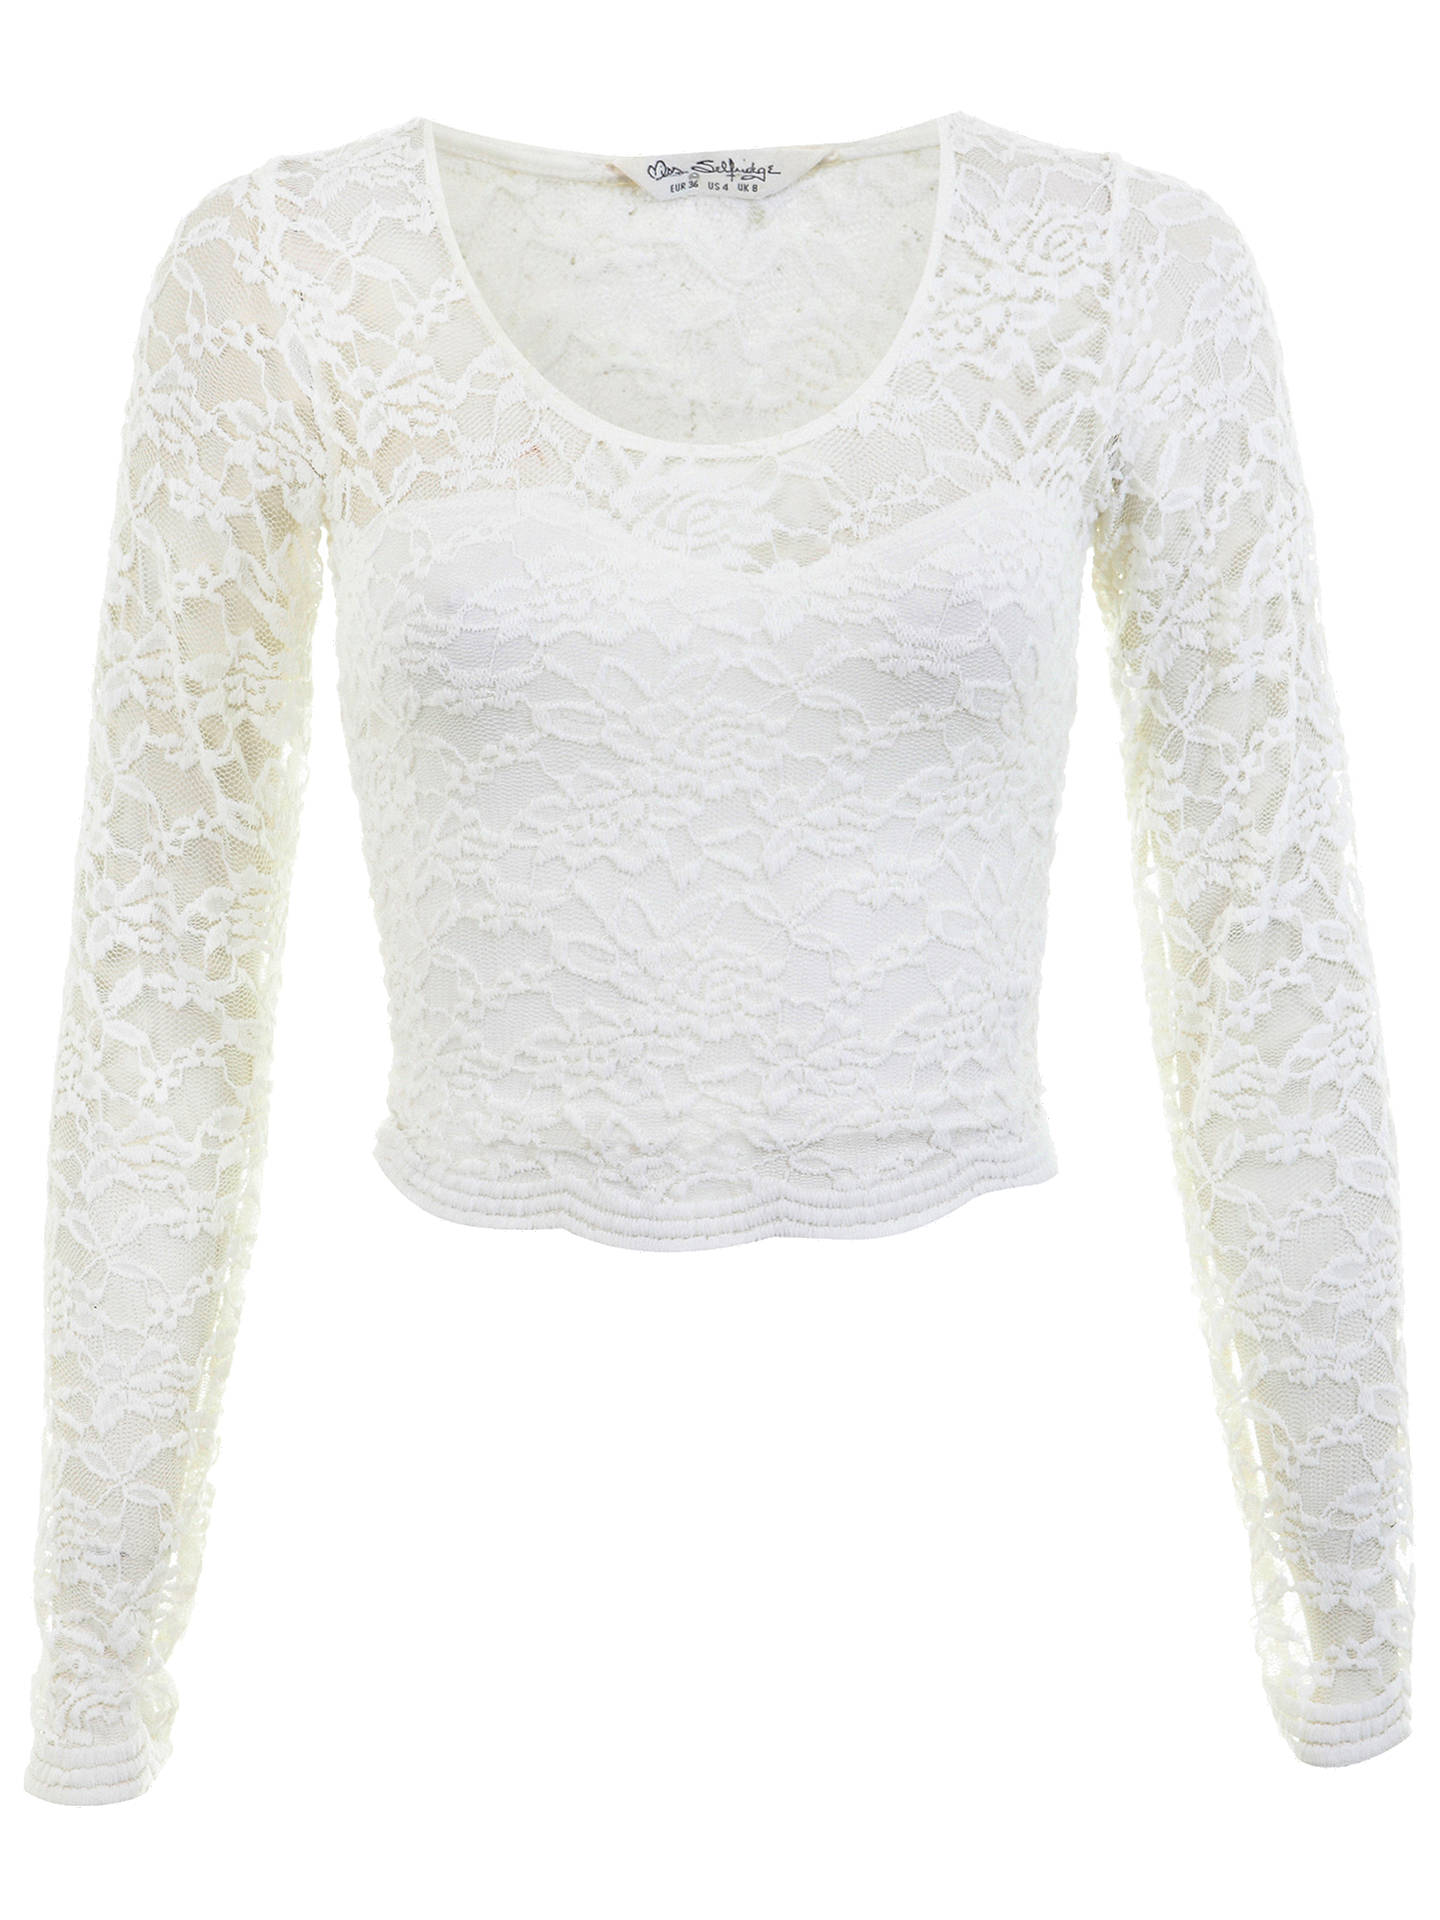 BuyMiss Selfridge Long Sleeve Scallop Lace Crop Top, Cream, 6 Online at johnlewis.com